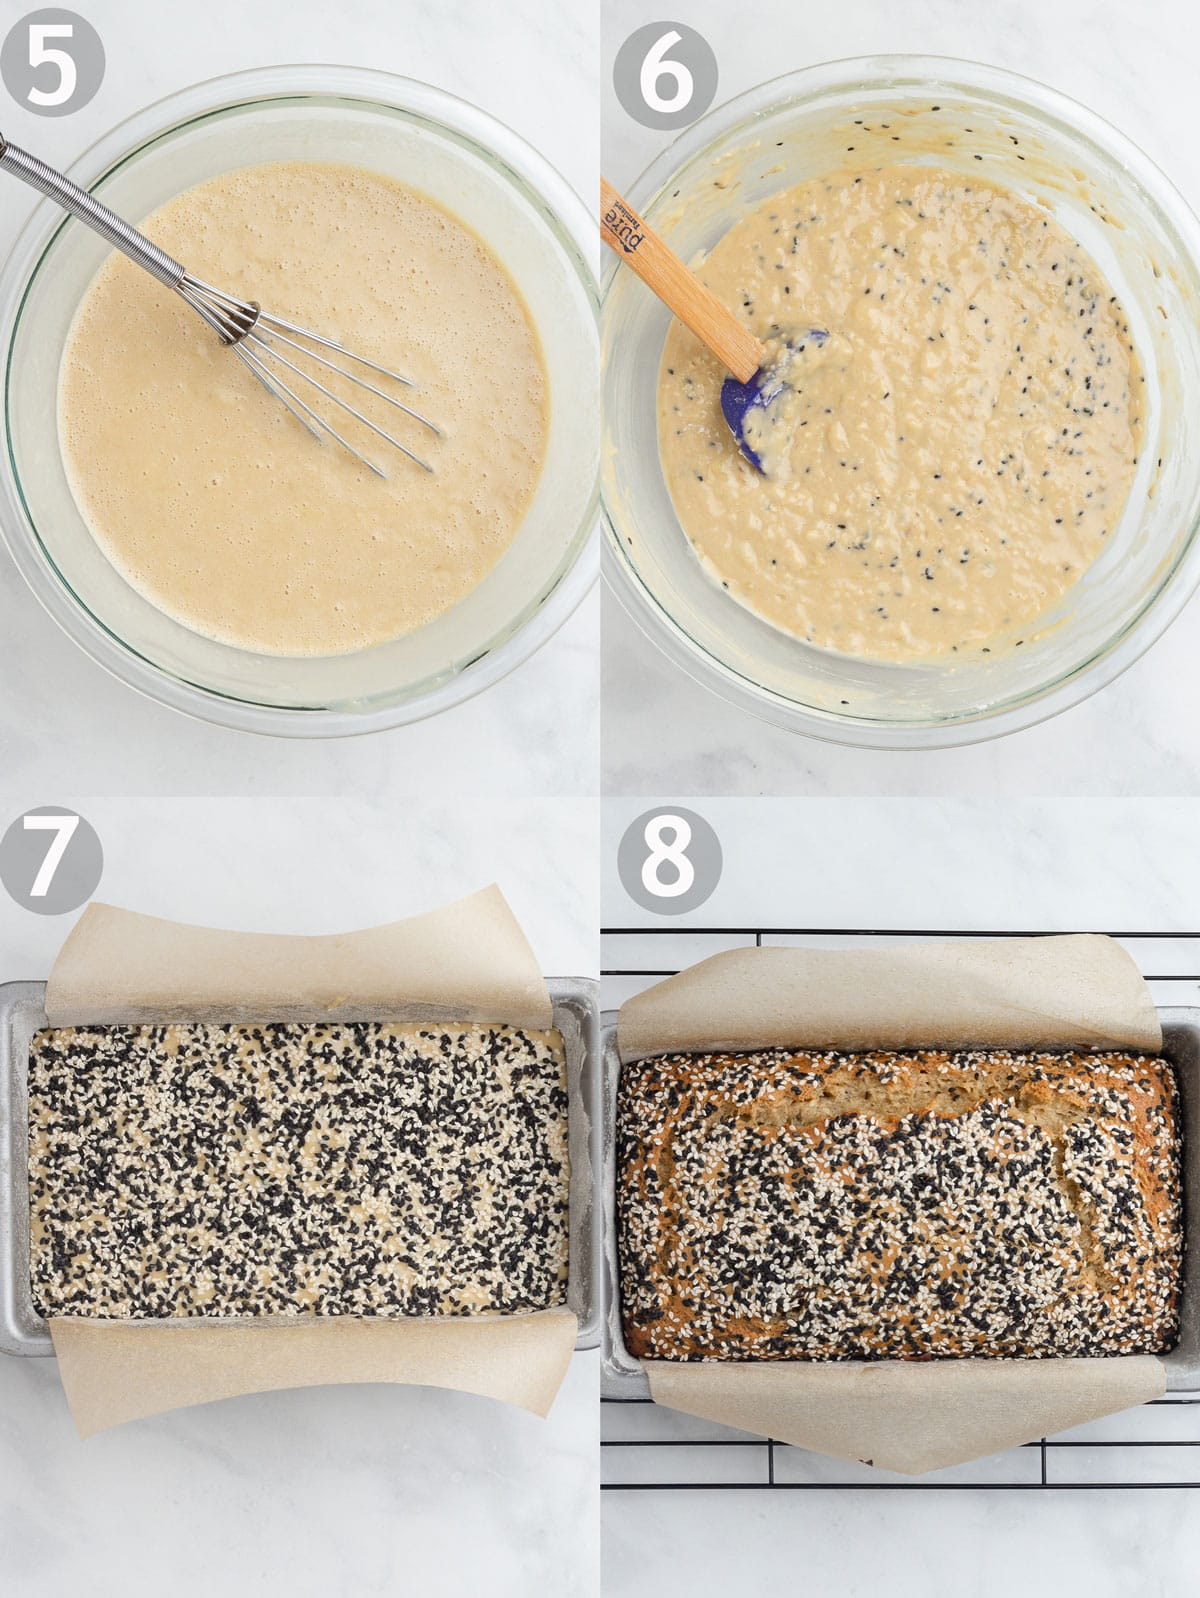 Banana bread steps including combining the wet and dry ingredients and baking the loaf.